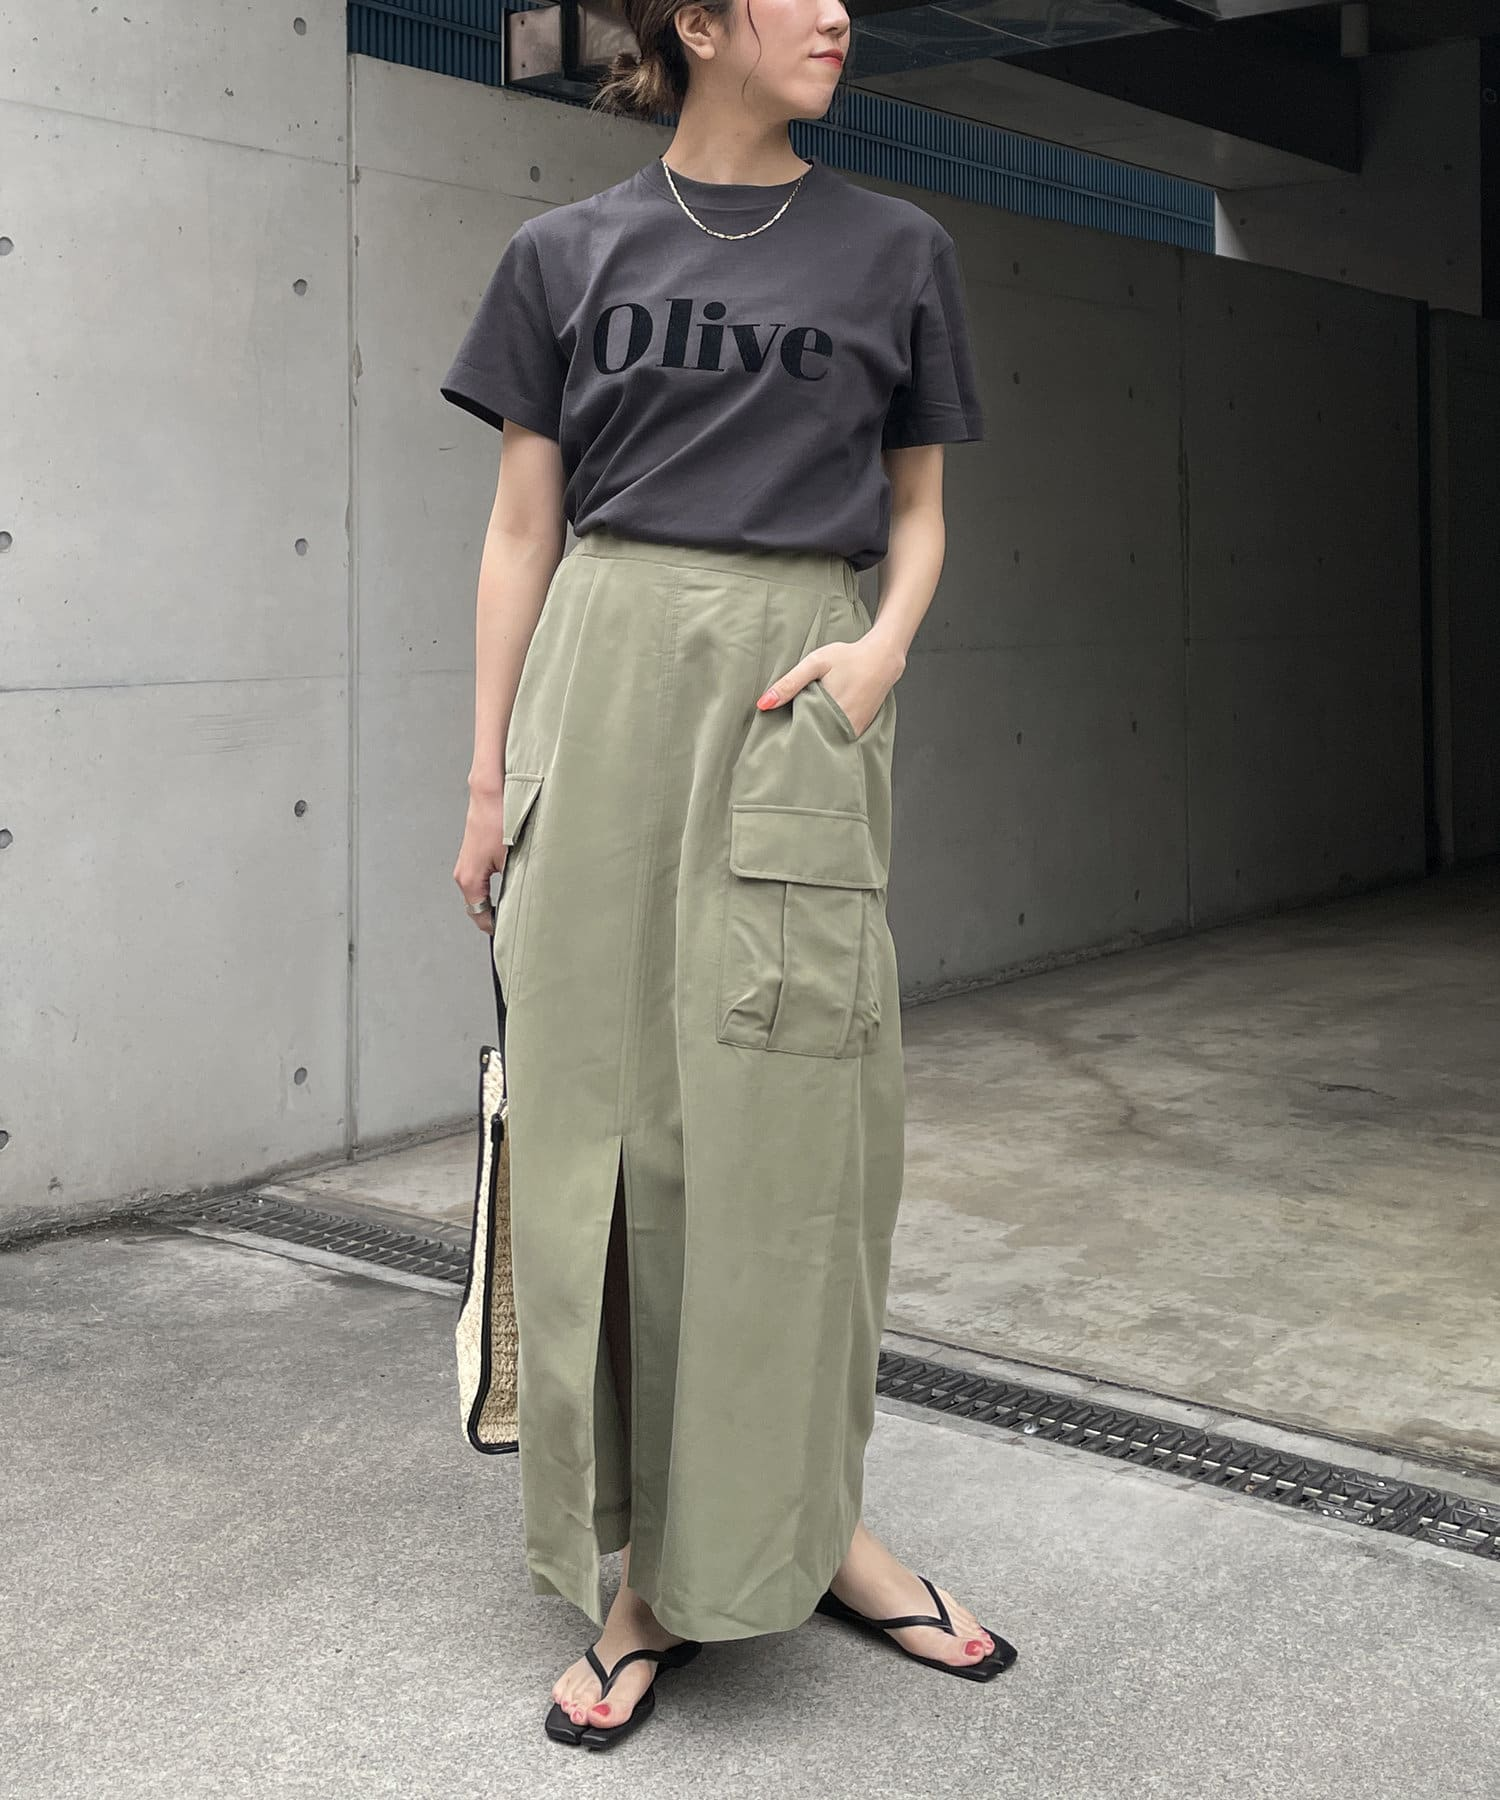 CAPRICIEUX LE'MAGE(カプリシュレマージュ) Olive Tシャツ